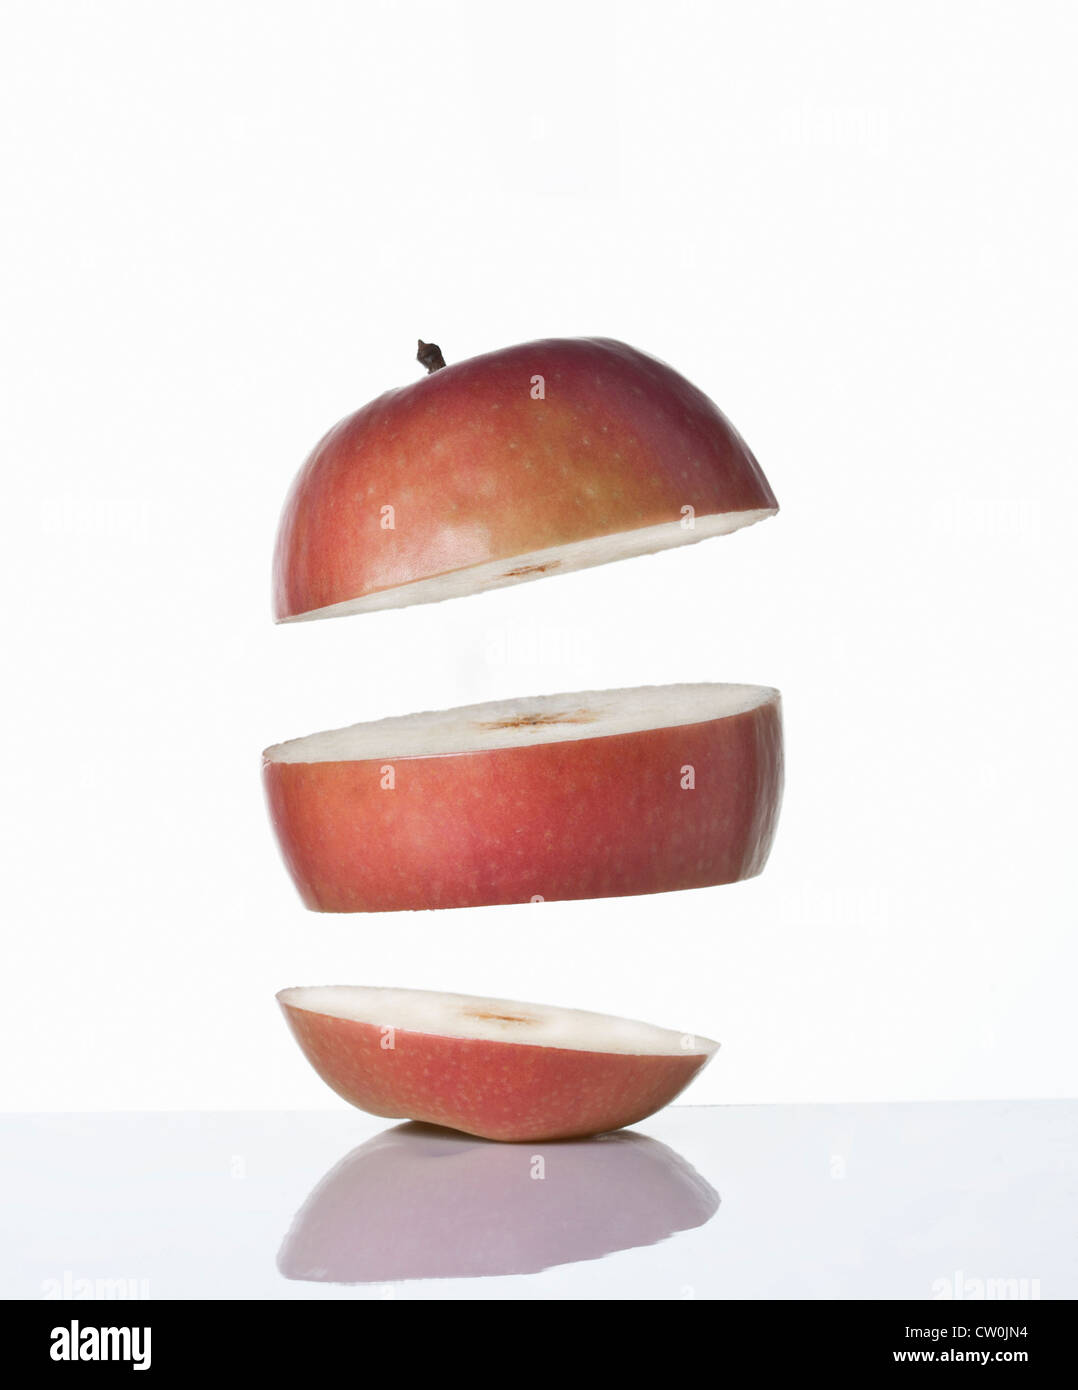 Close up of slices of apple - Stock Image